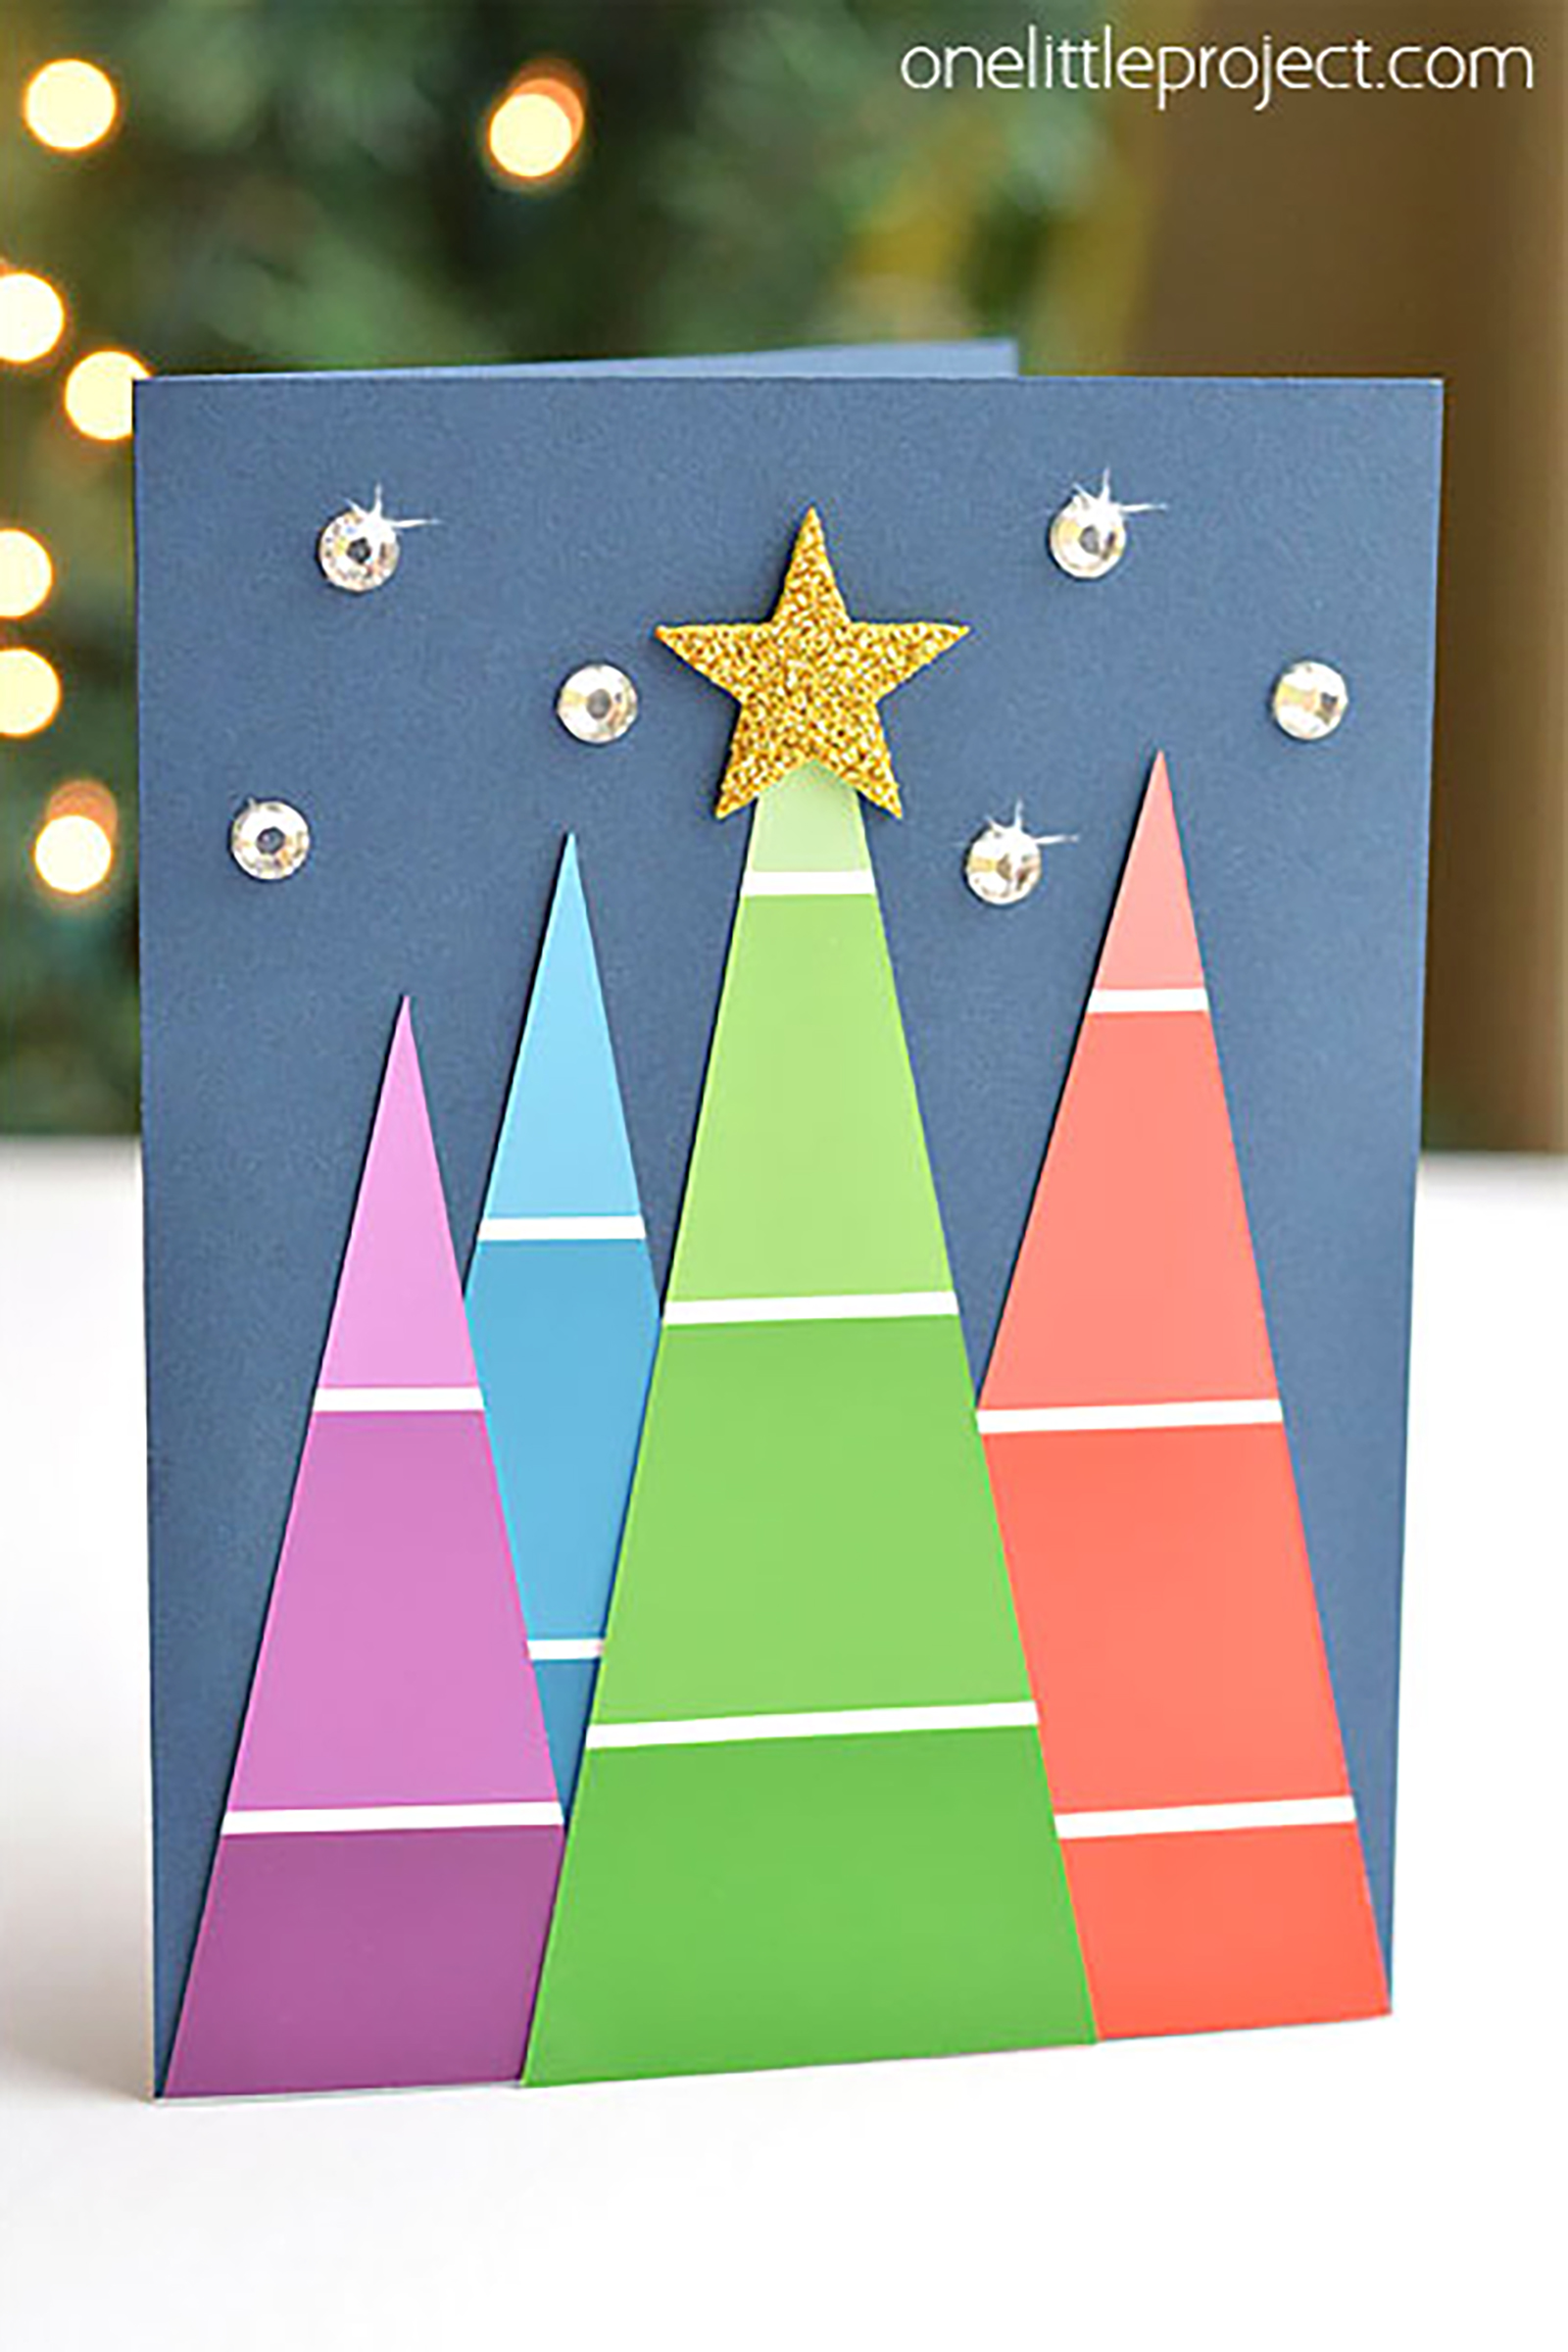 Christmas Card Design Ideas Ks2 : Diy christmas card ideas easy homemade